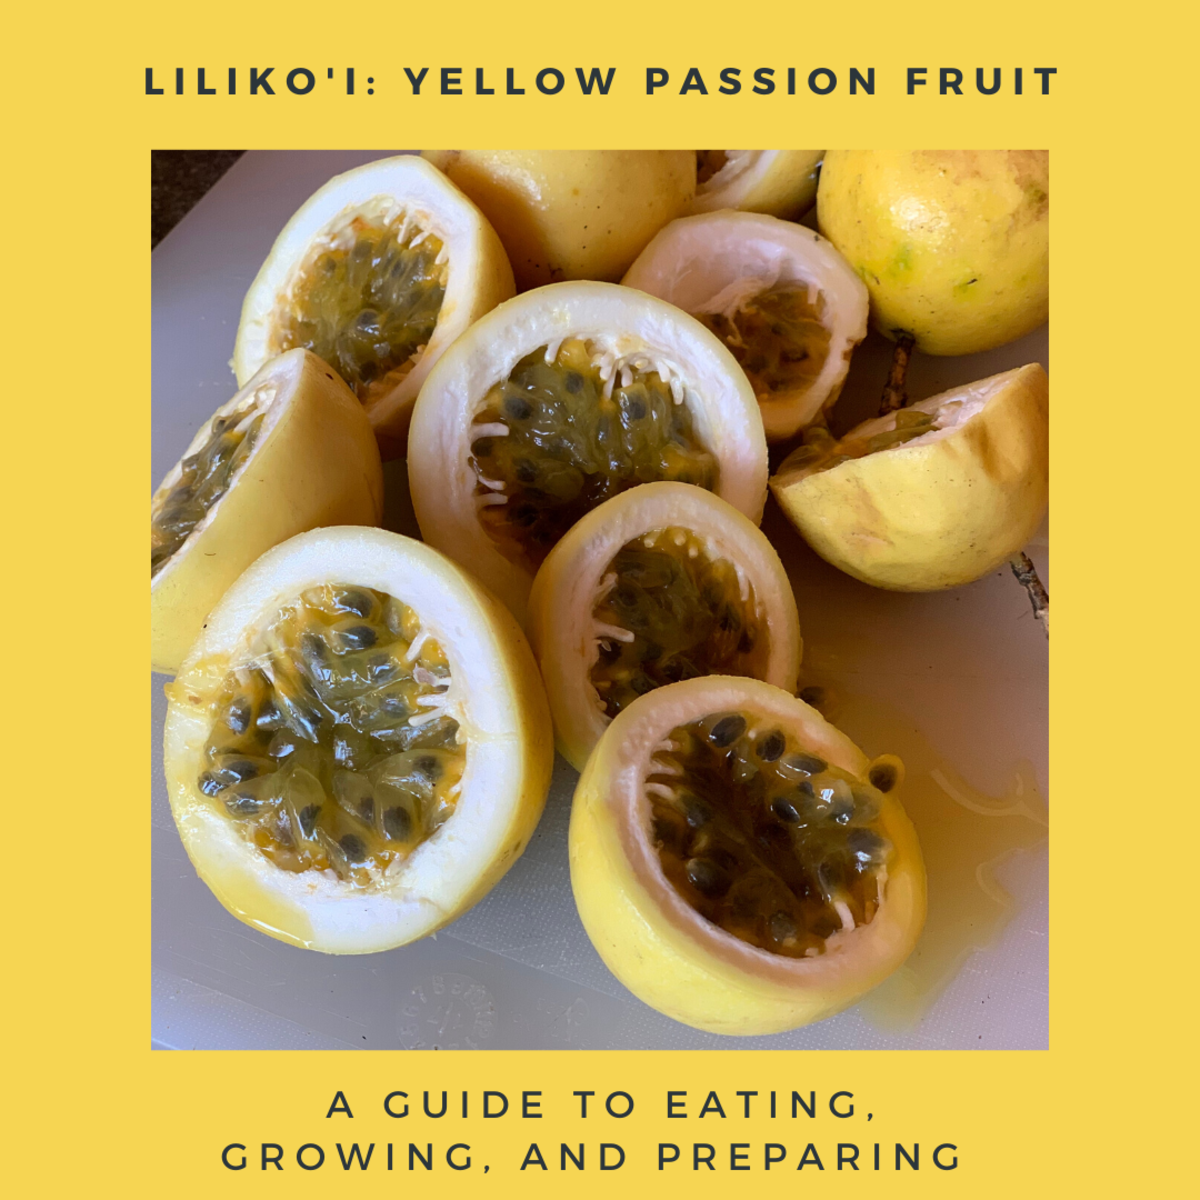 A Tropical Taste of Hawaii: Yellow Passion Fruit Liliko'i